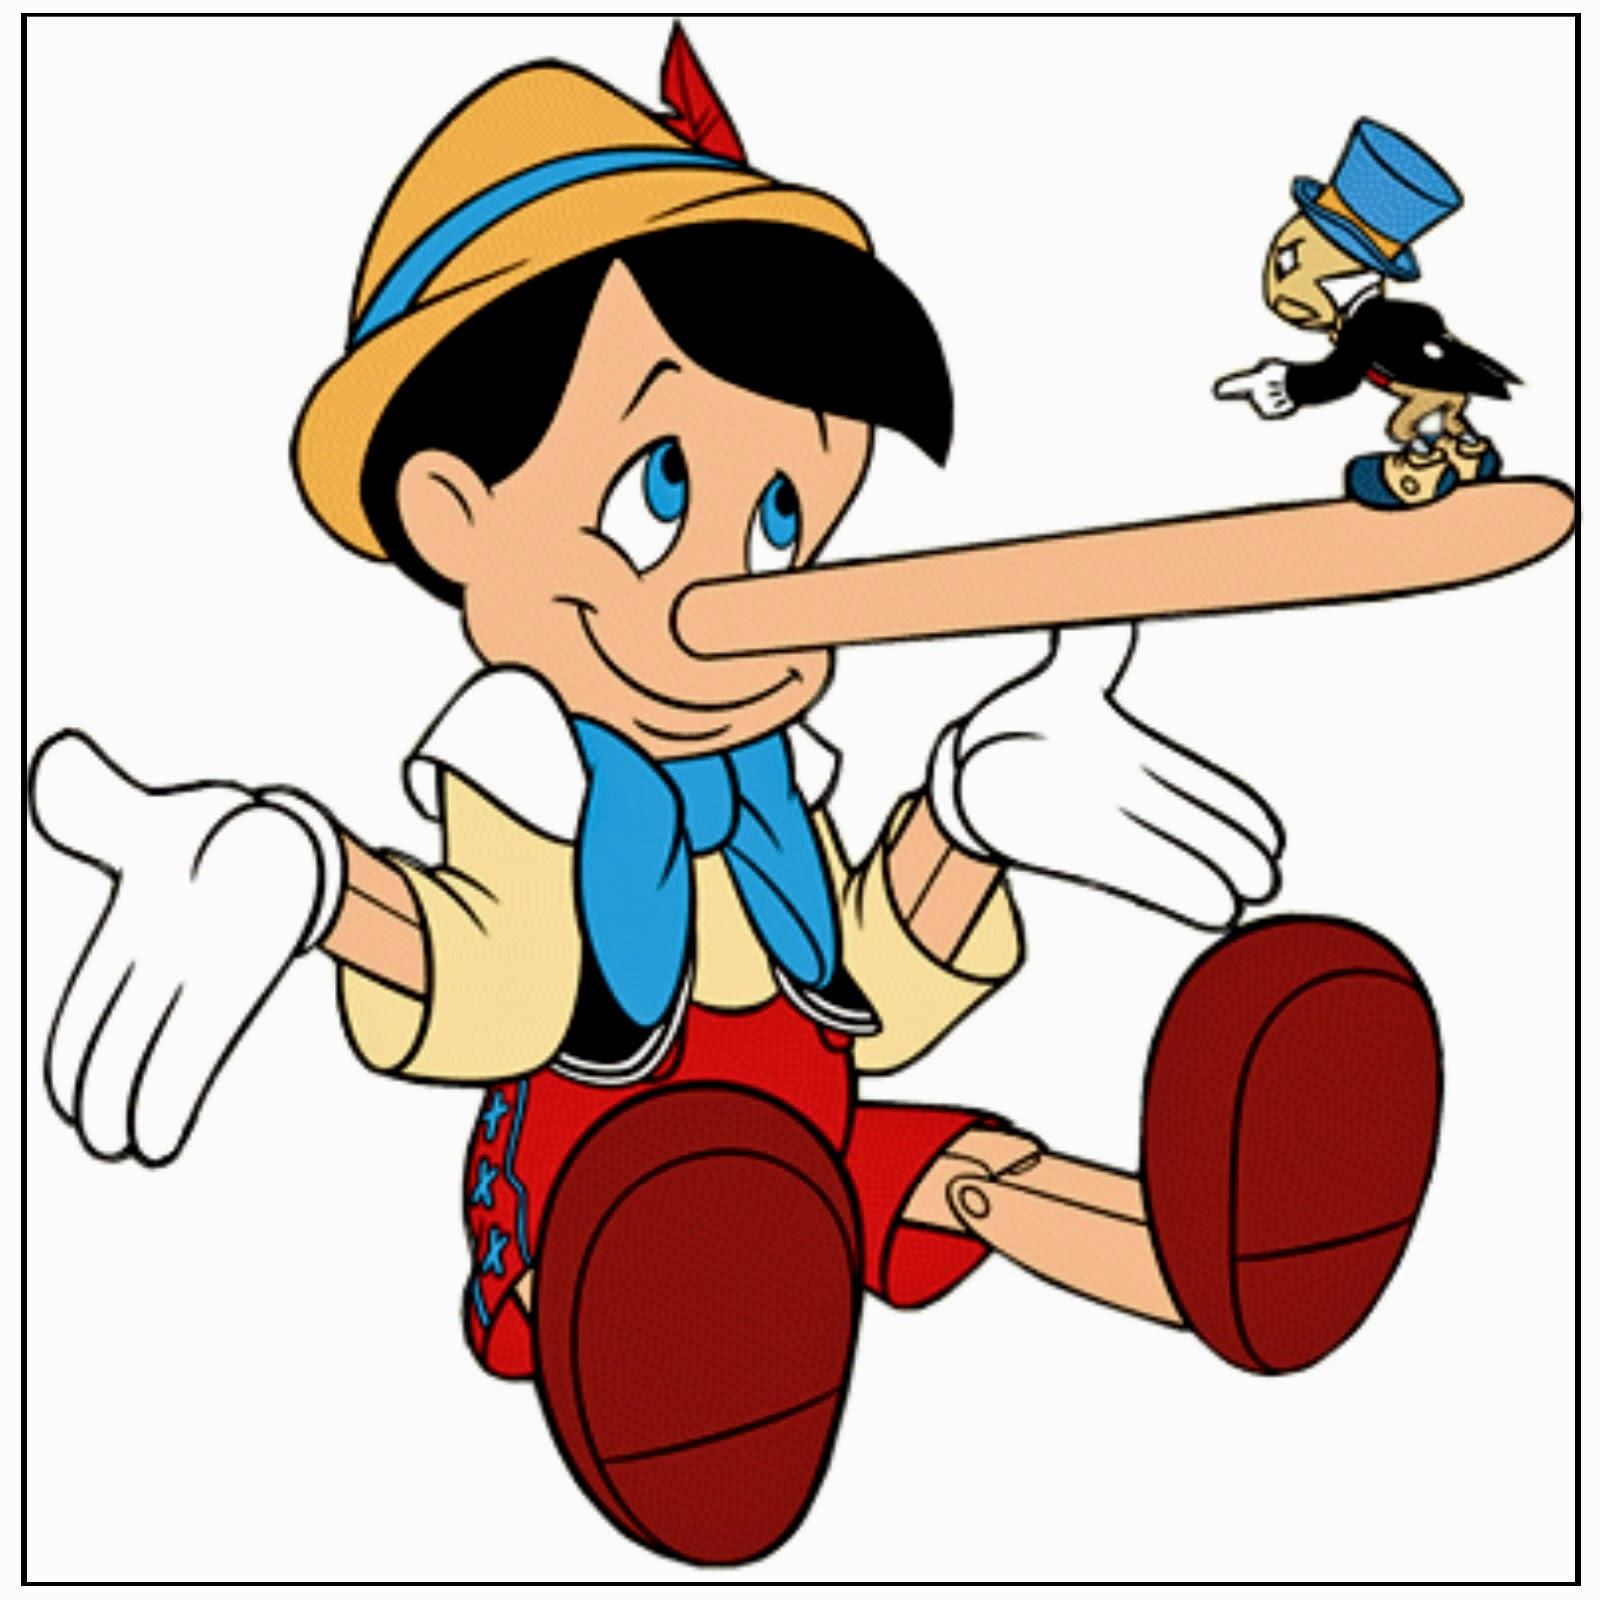 Kids showing honesty clipart graphic free stock Funeral Fund Blog: Jiminy Cricket! It's National Honesty Day! graphic free stock